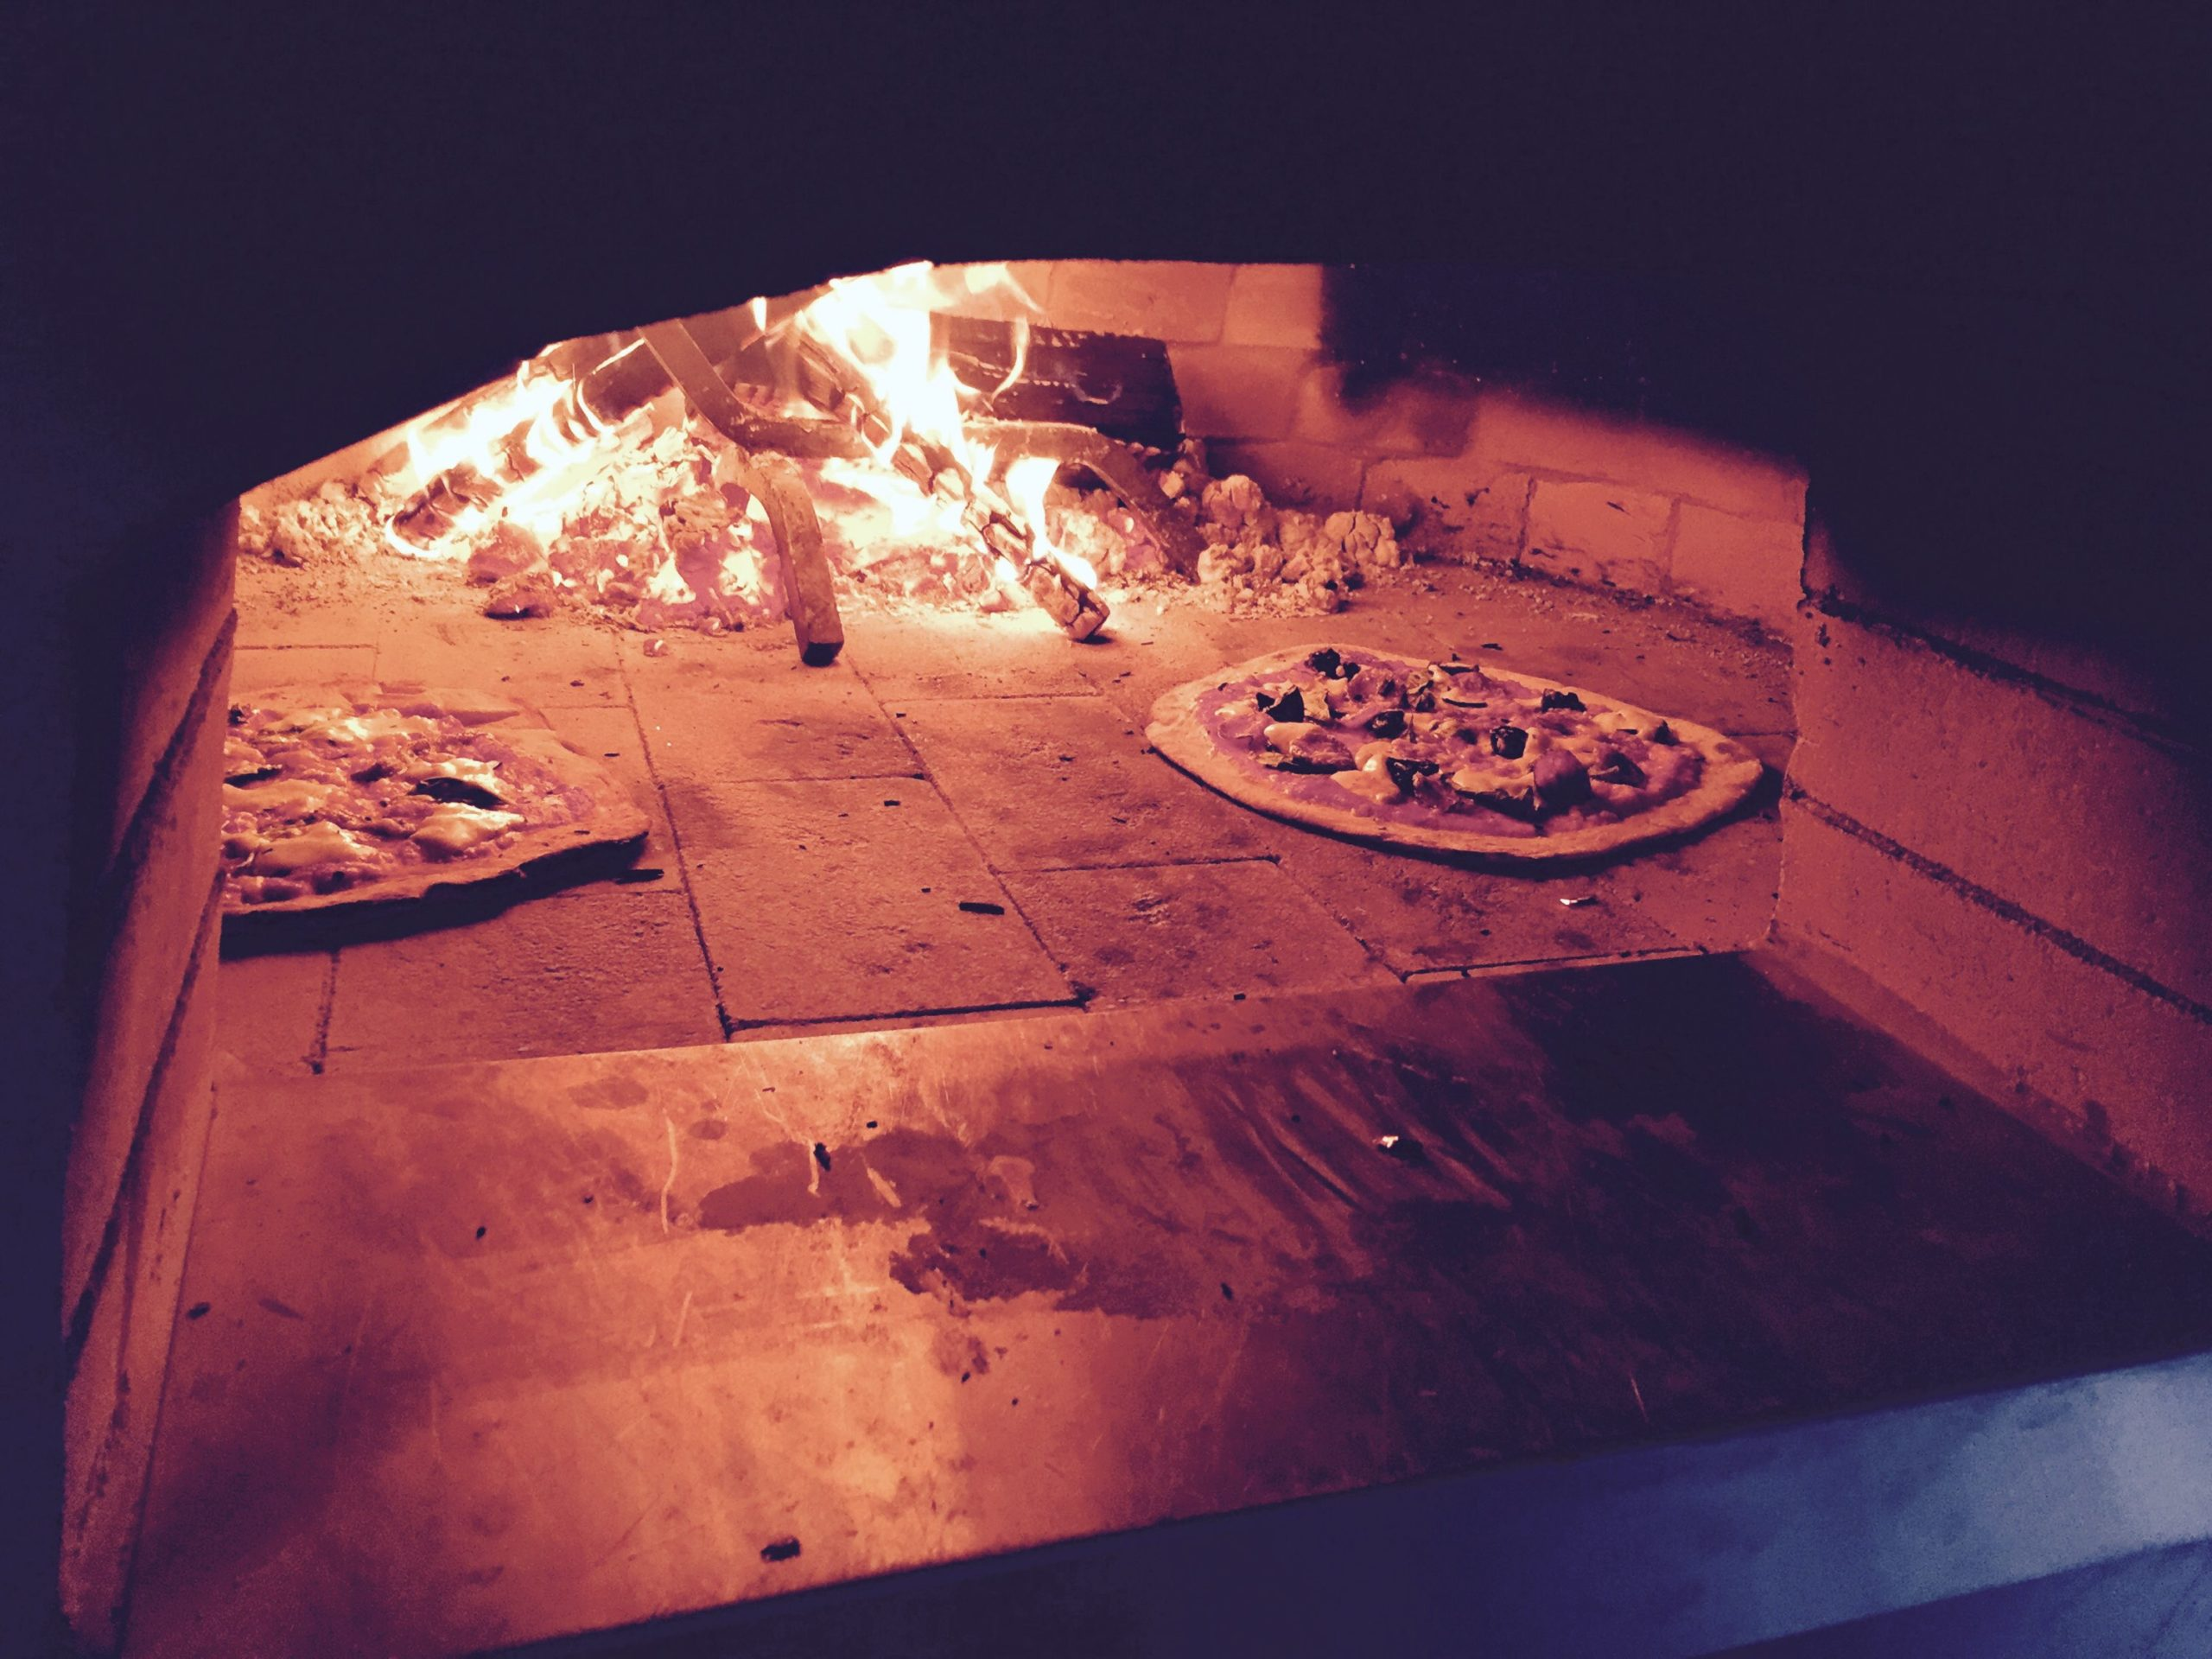 Groundlings Wood Fired Pizza